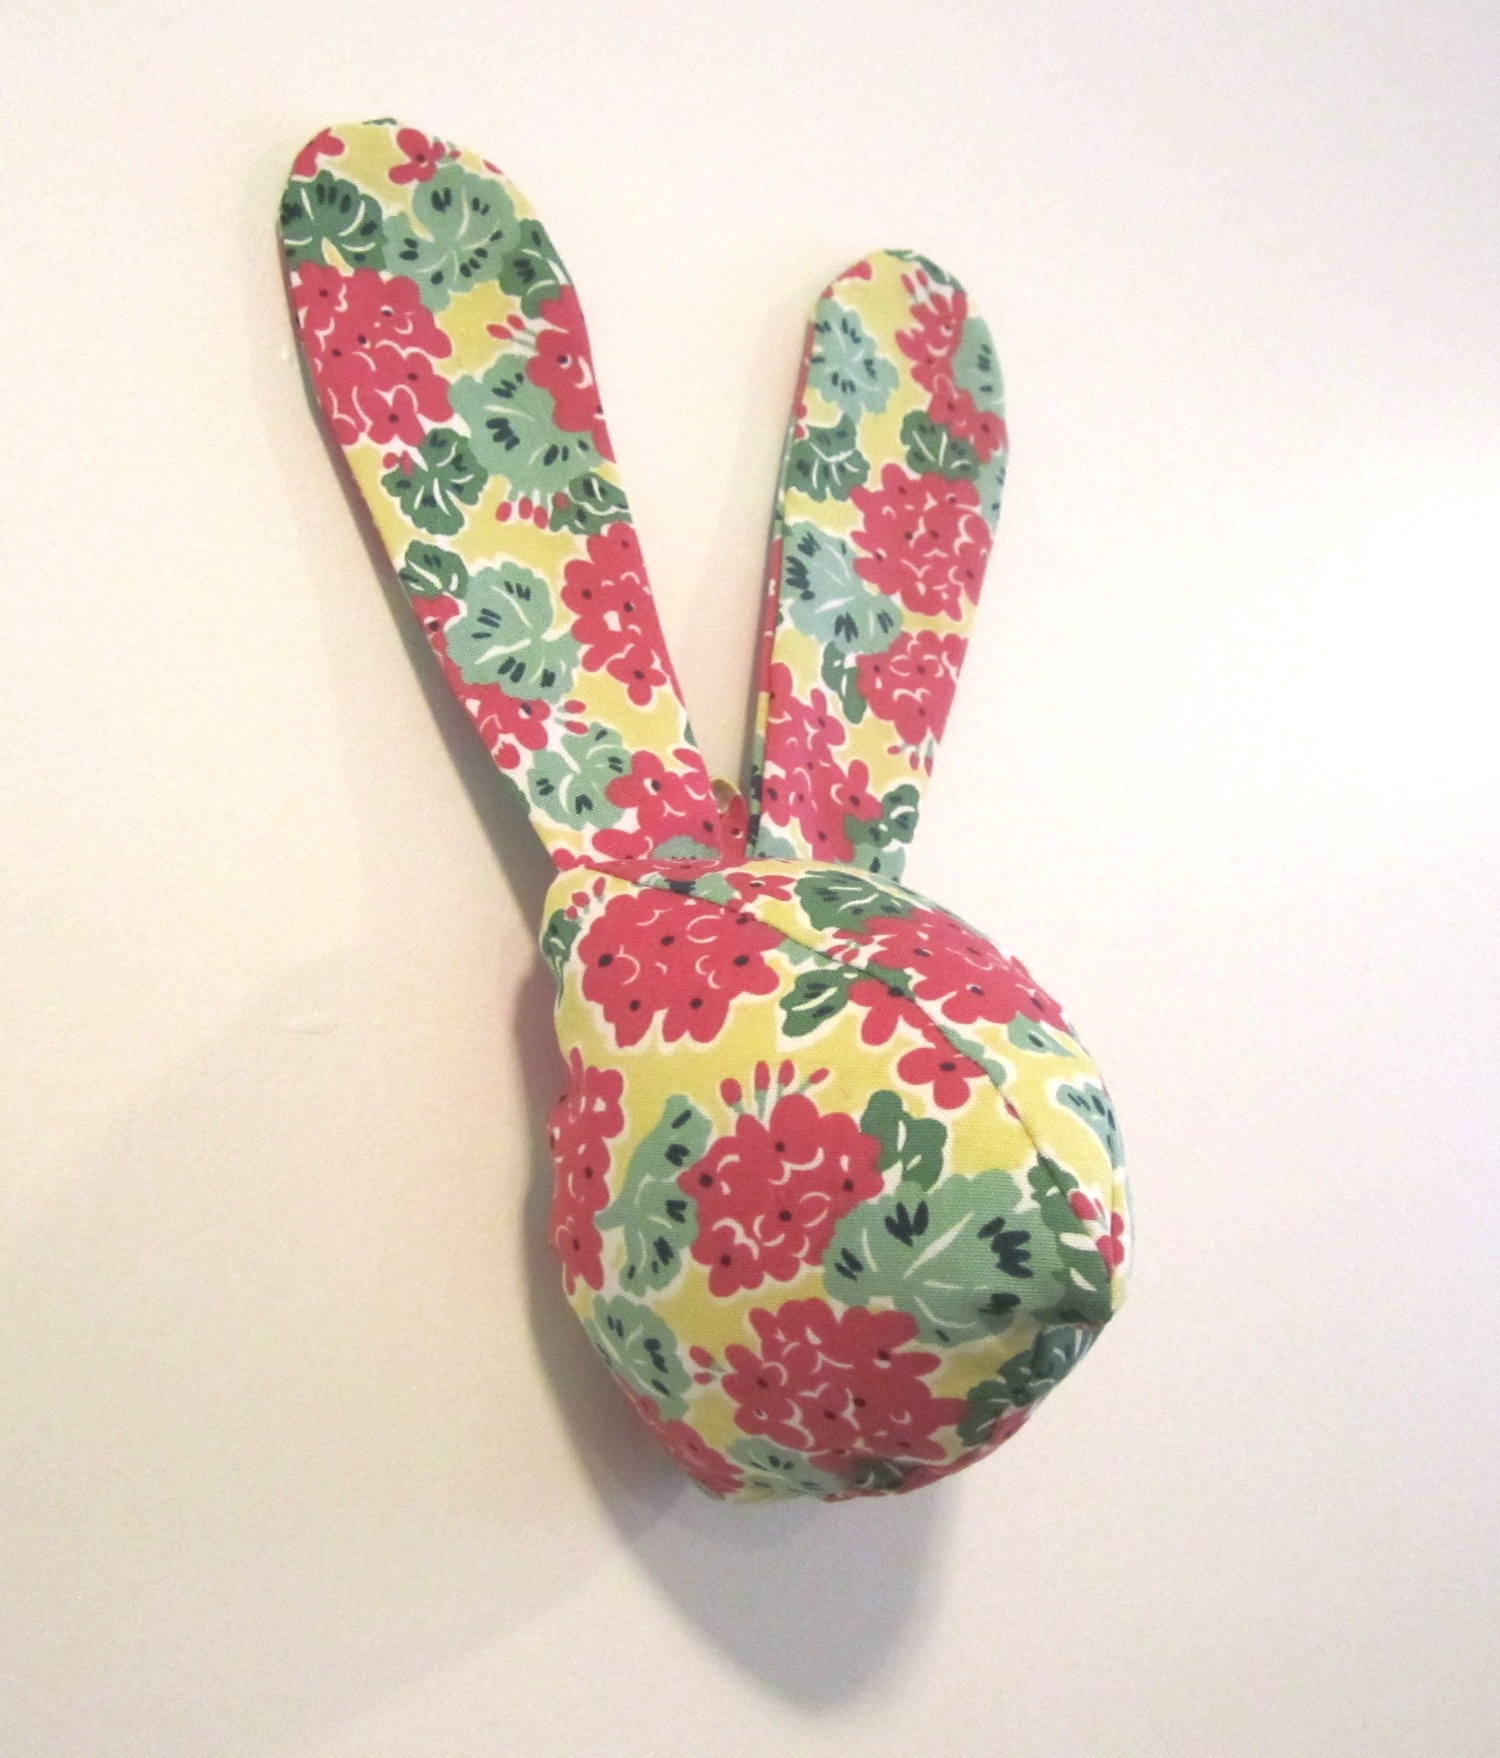 Bunny Head Sewing Pattern and Instructions | Amie Scott